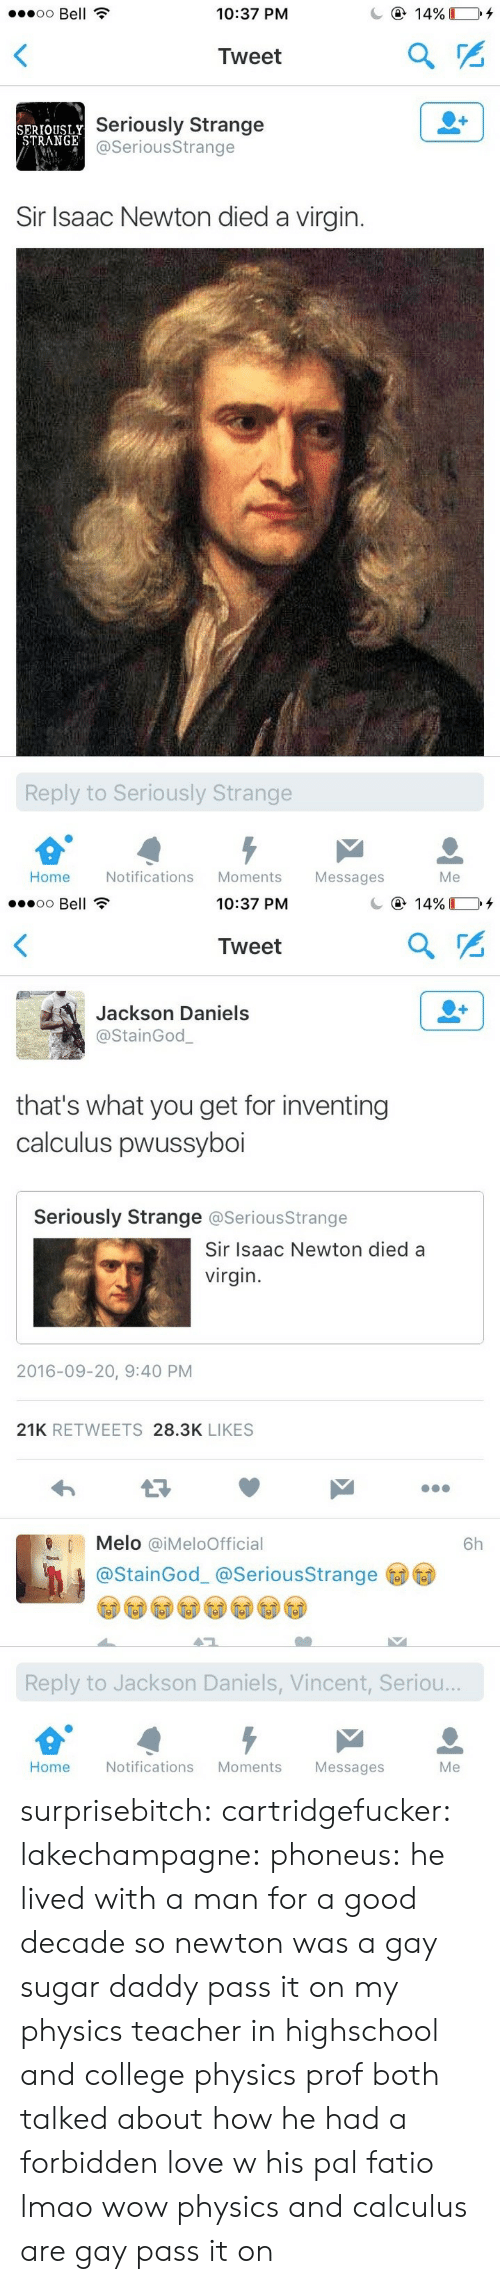 Notifications: oo Bell  10:37 PM  Tweet  SERTOUSLY  STRANGE  Seriously Strange  @SeriousStrange  Sir Isaac Newton died a virgin.  Reply to Seriously Strange  Home Notifications Moments Messages  Me   10:37 PM  Tweet  Jackson Daniels  @StainGod  that's what you get for inventing  calculus pwussyboi  Seriously Strange @SeriousStrange  Sir Isaac Newton died a  virgin  2016-09-20, 9:40 PM  21K RETWEETS 28.3K LIKES  Melo @iMeloOfficial  6h  @StainGod_ @SeriousStrange  Reply to Jackson Daniels, Vincent, Seriou..  Home  Notifications Moments  Messages  Me surprisebitch:  cartridgefucker: lakechampagne:  phoneus: he lived with a man for a good decade so newton was a gay sugar daddy pass it on  my physics teacher in highschool and college physics prof both talked about how he had a forbidden love w his pal fatio lmao  wow physics and calculus are gay pass it on